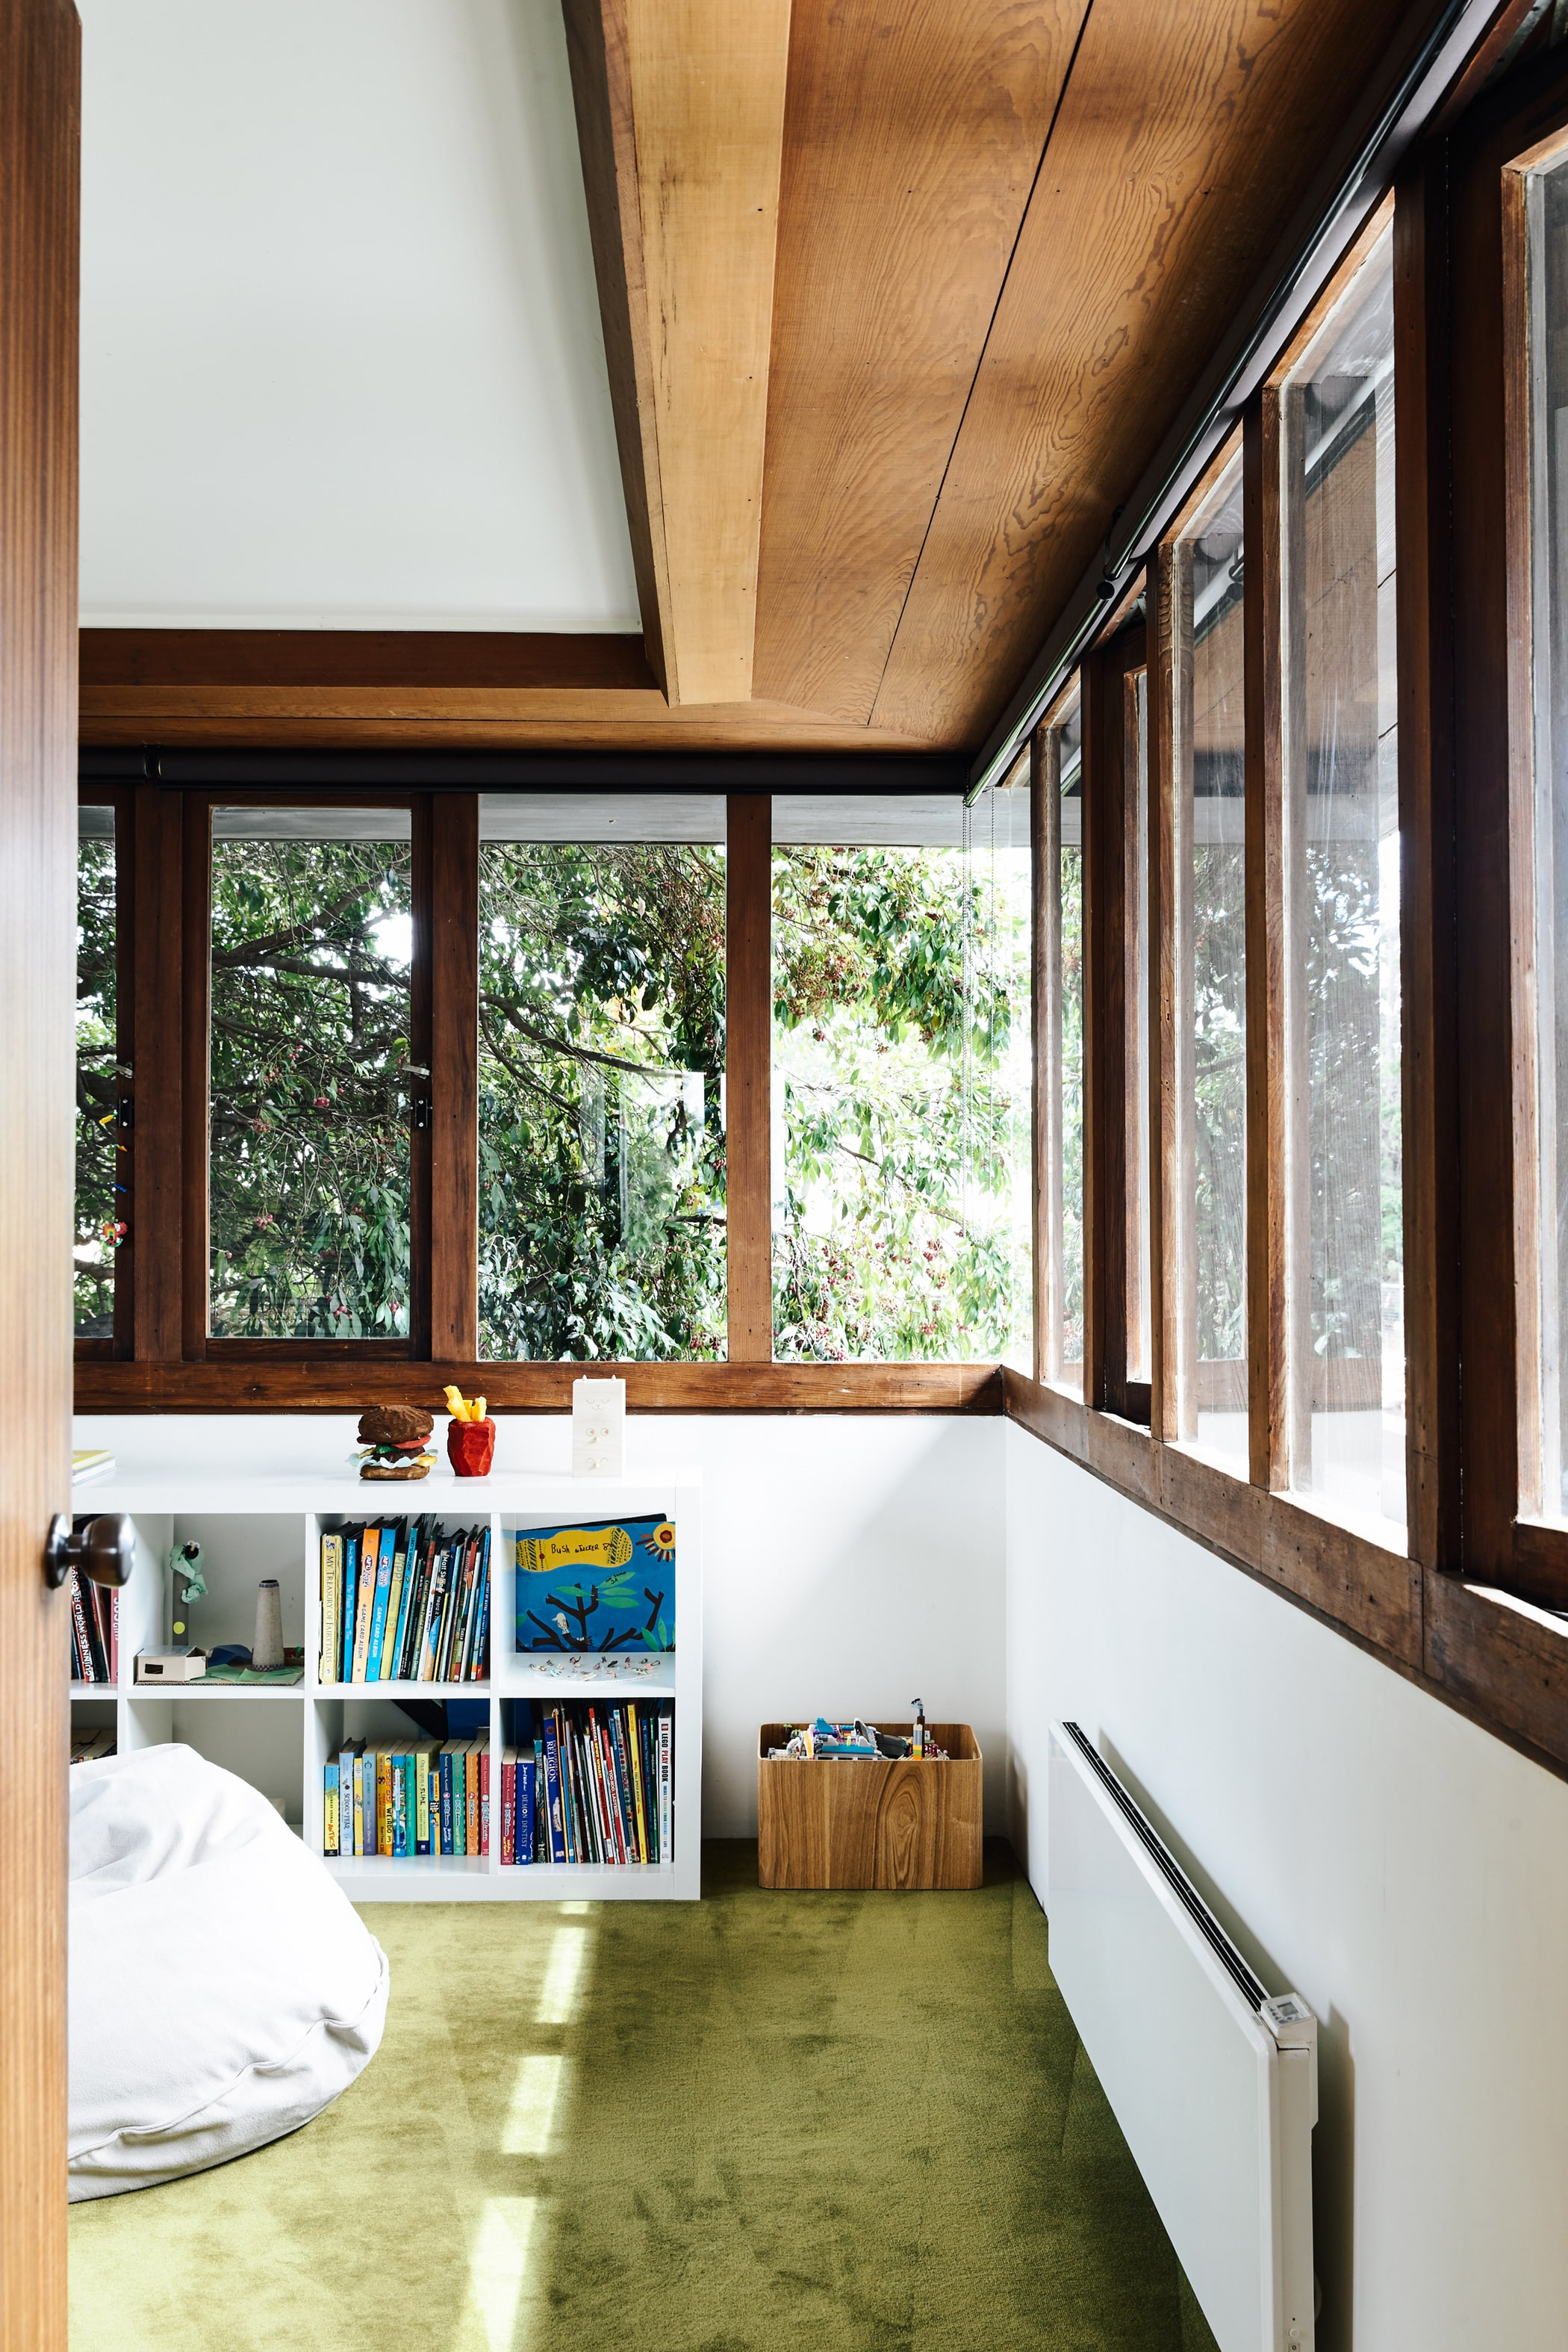 Gallery Of The Godsell House By David Godsell Local Australian Interiors & Modernist Architecture Beaumaris, Vic Image 10